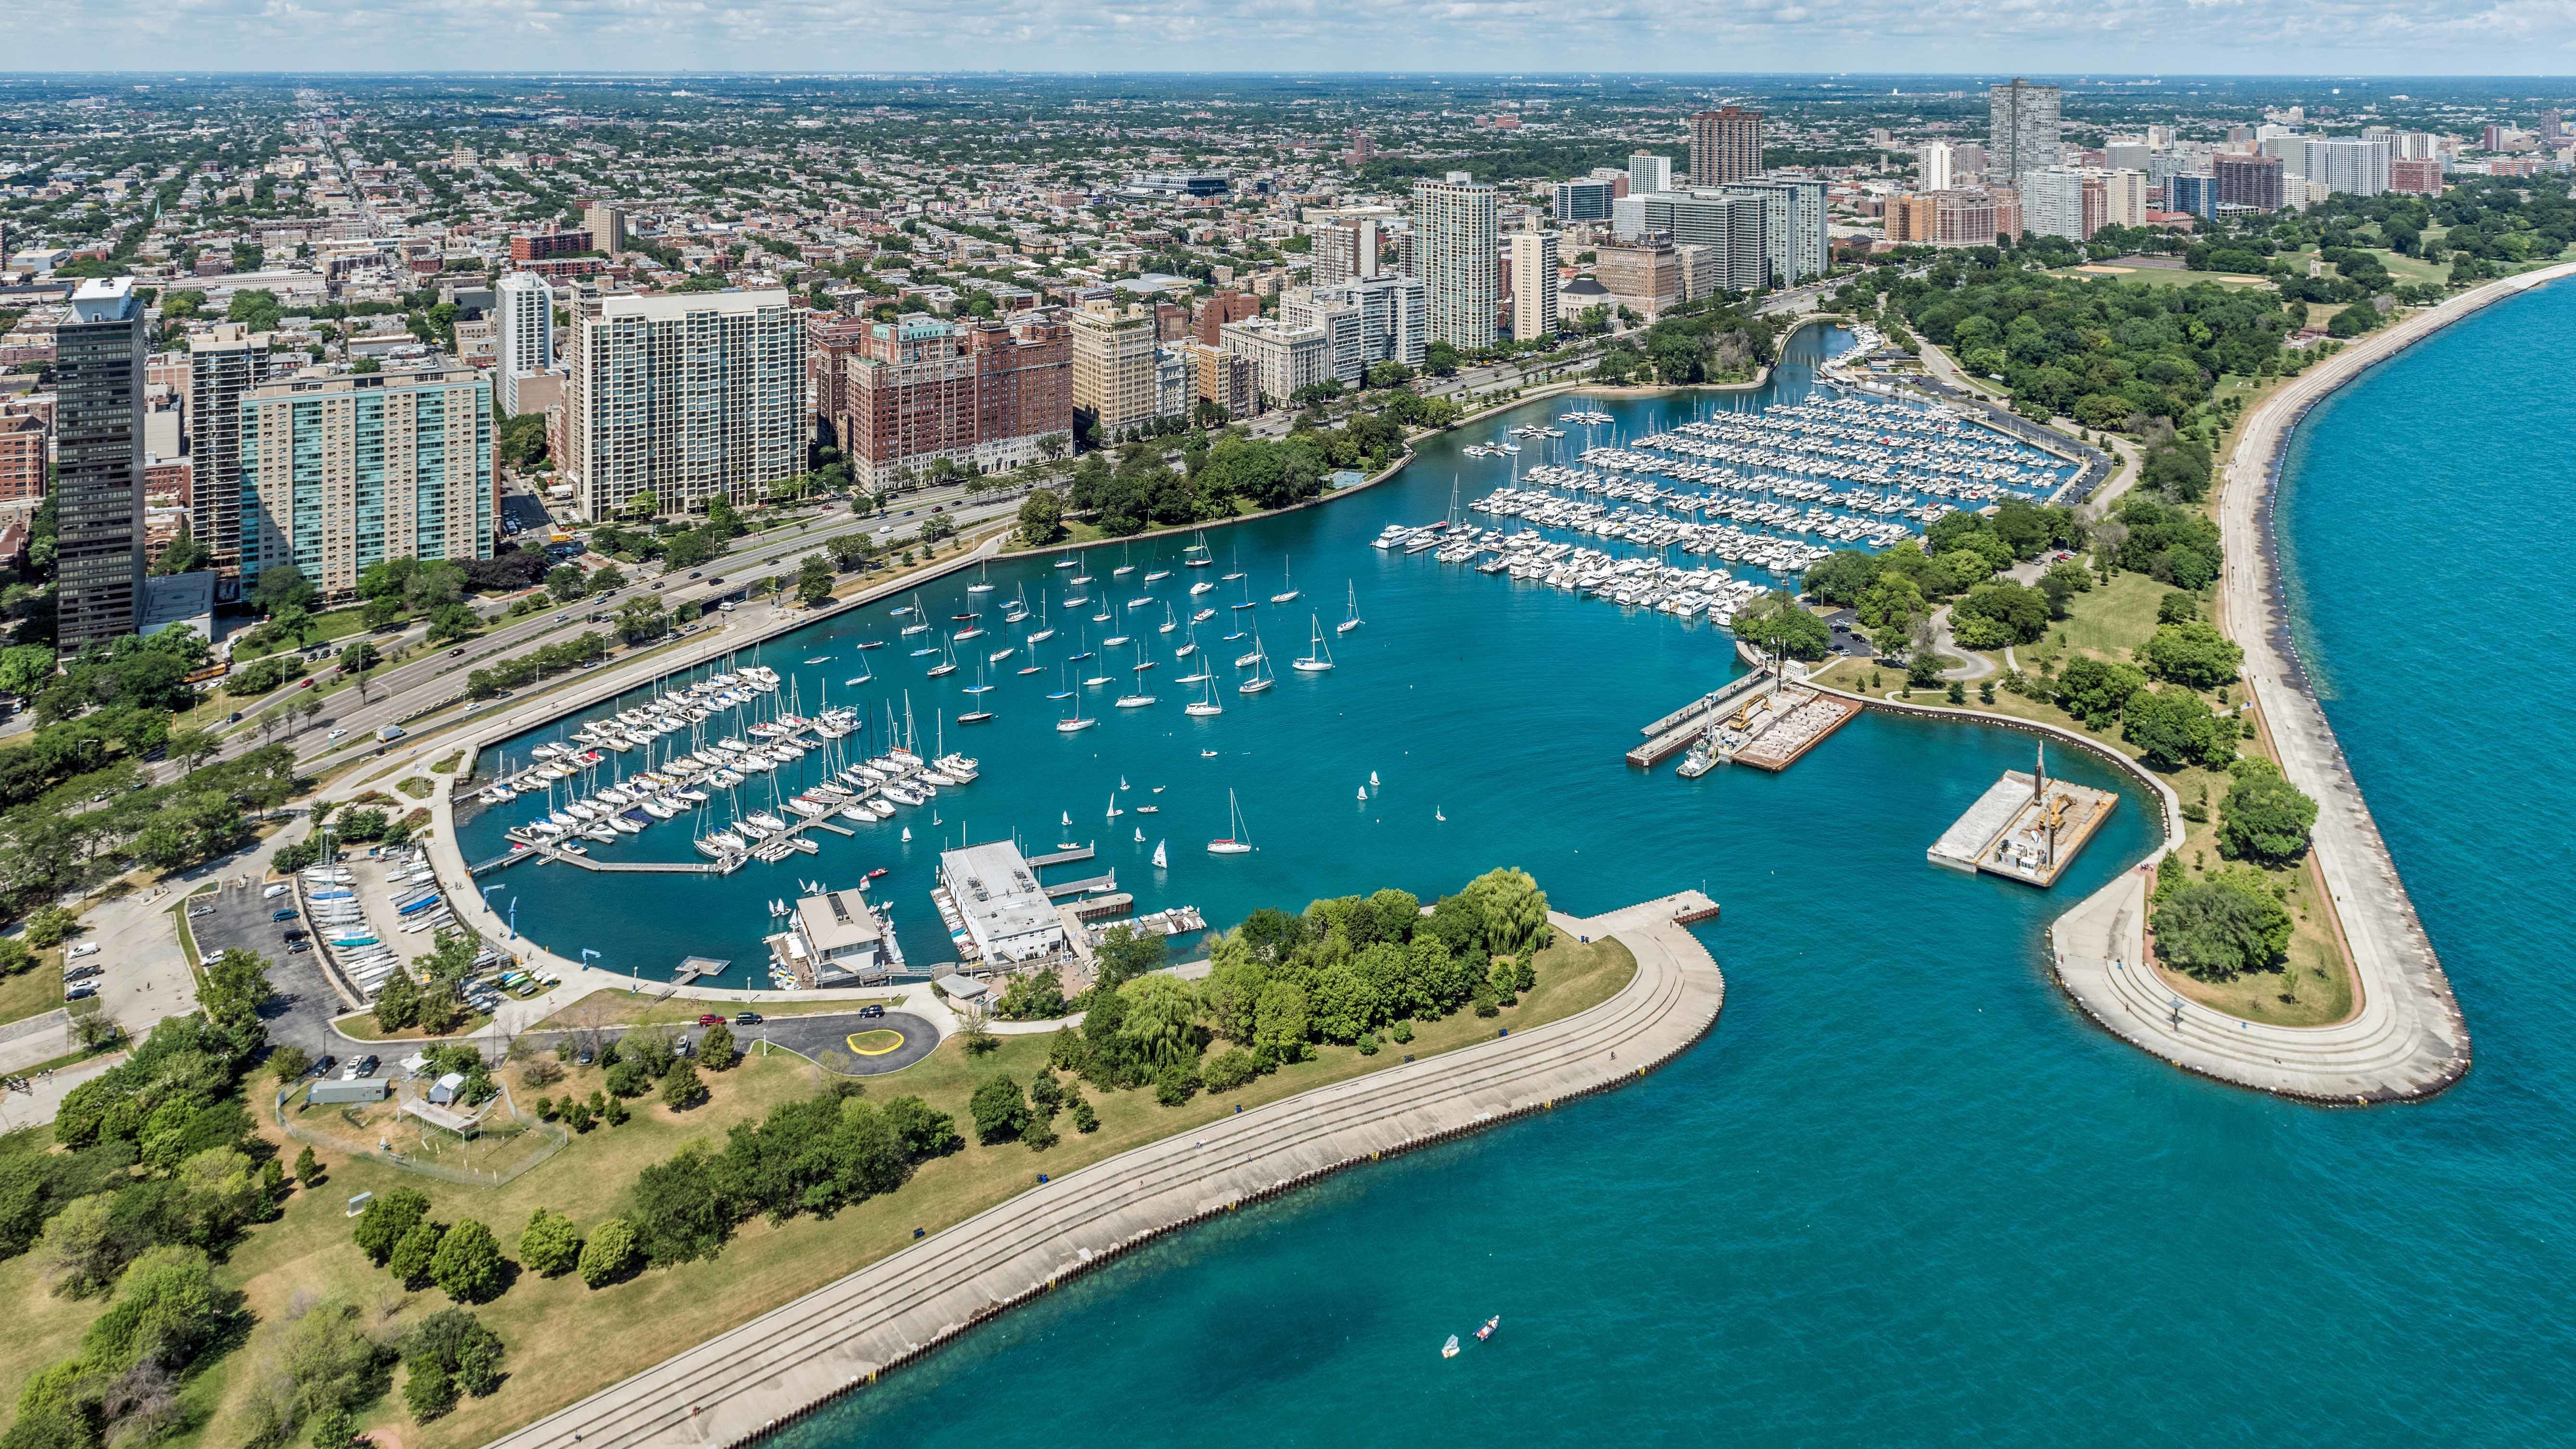 Belmont harbor the chicago harbors in chicago il united - 4 bedroom apartments lakeview chicago ...